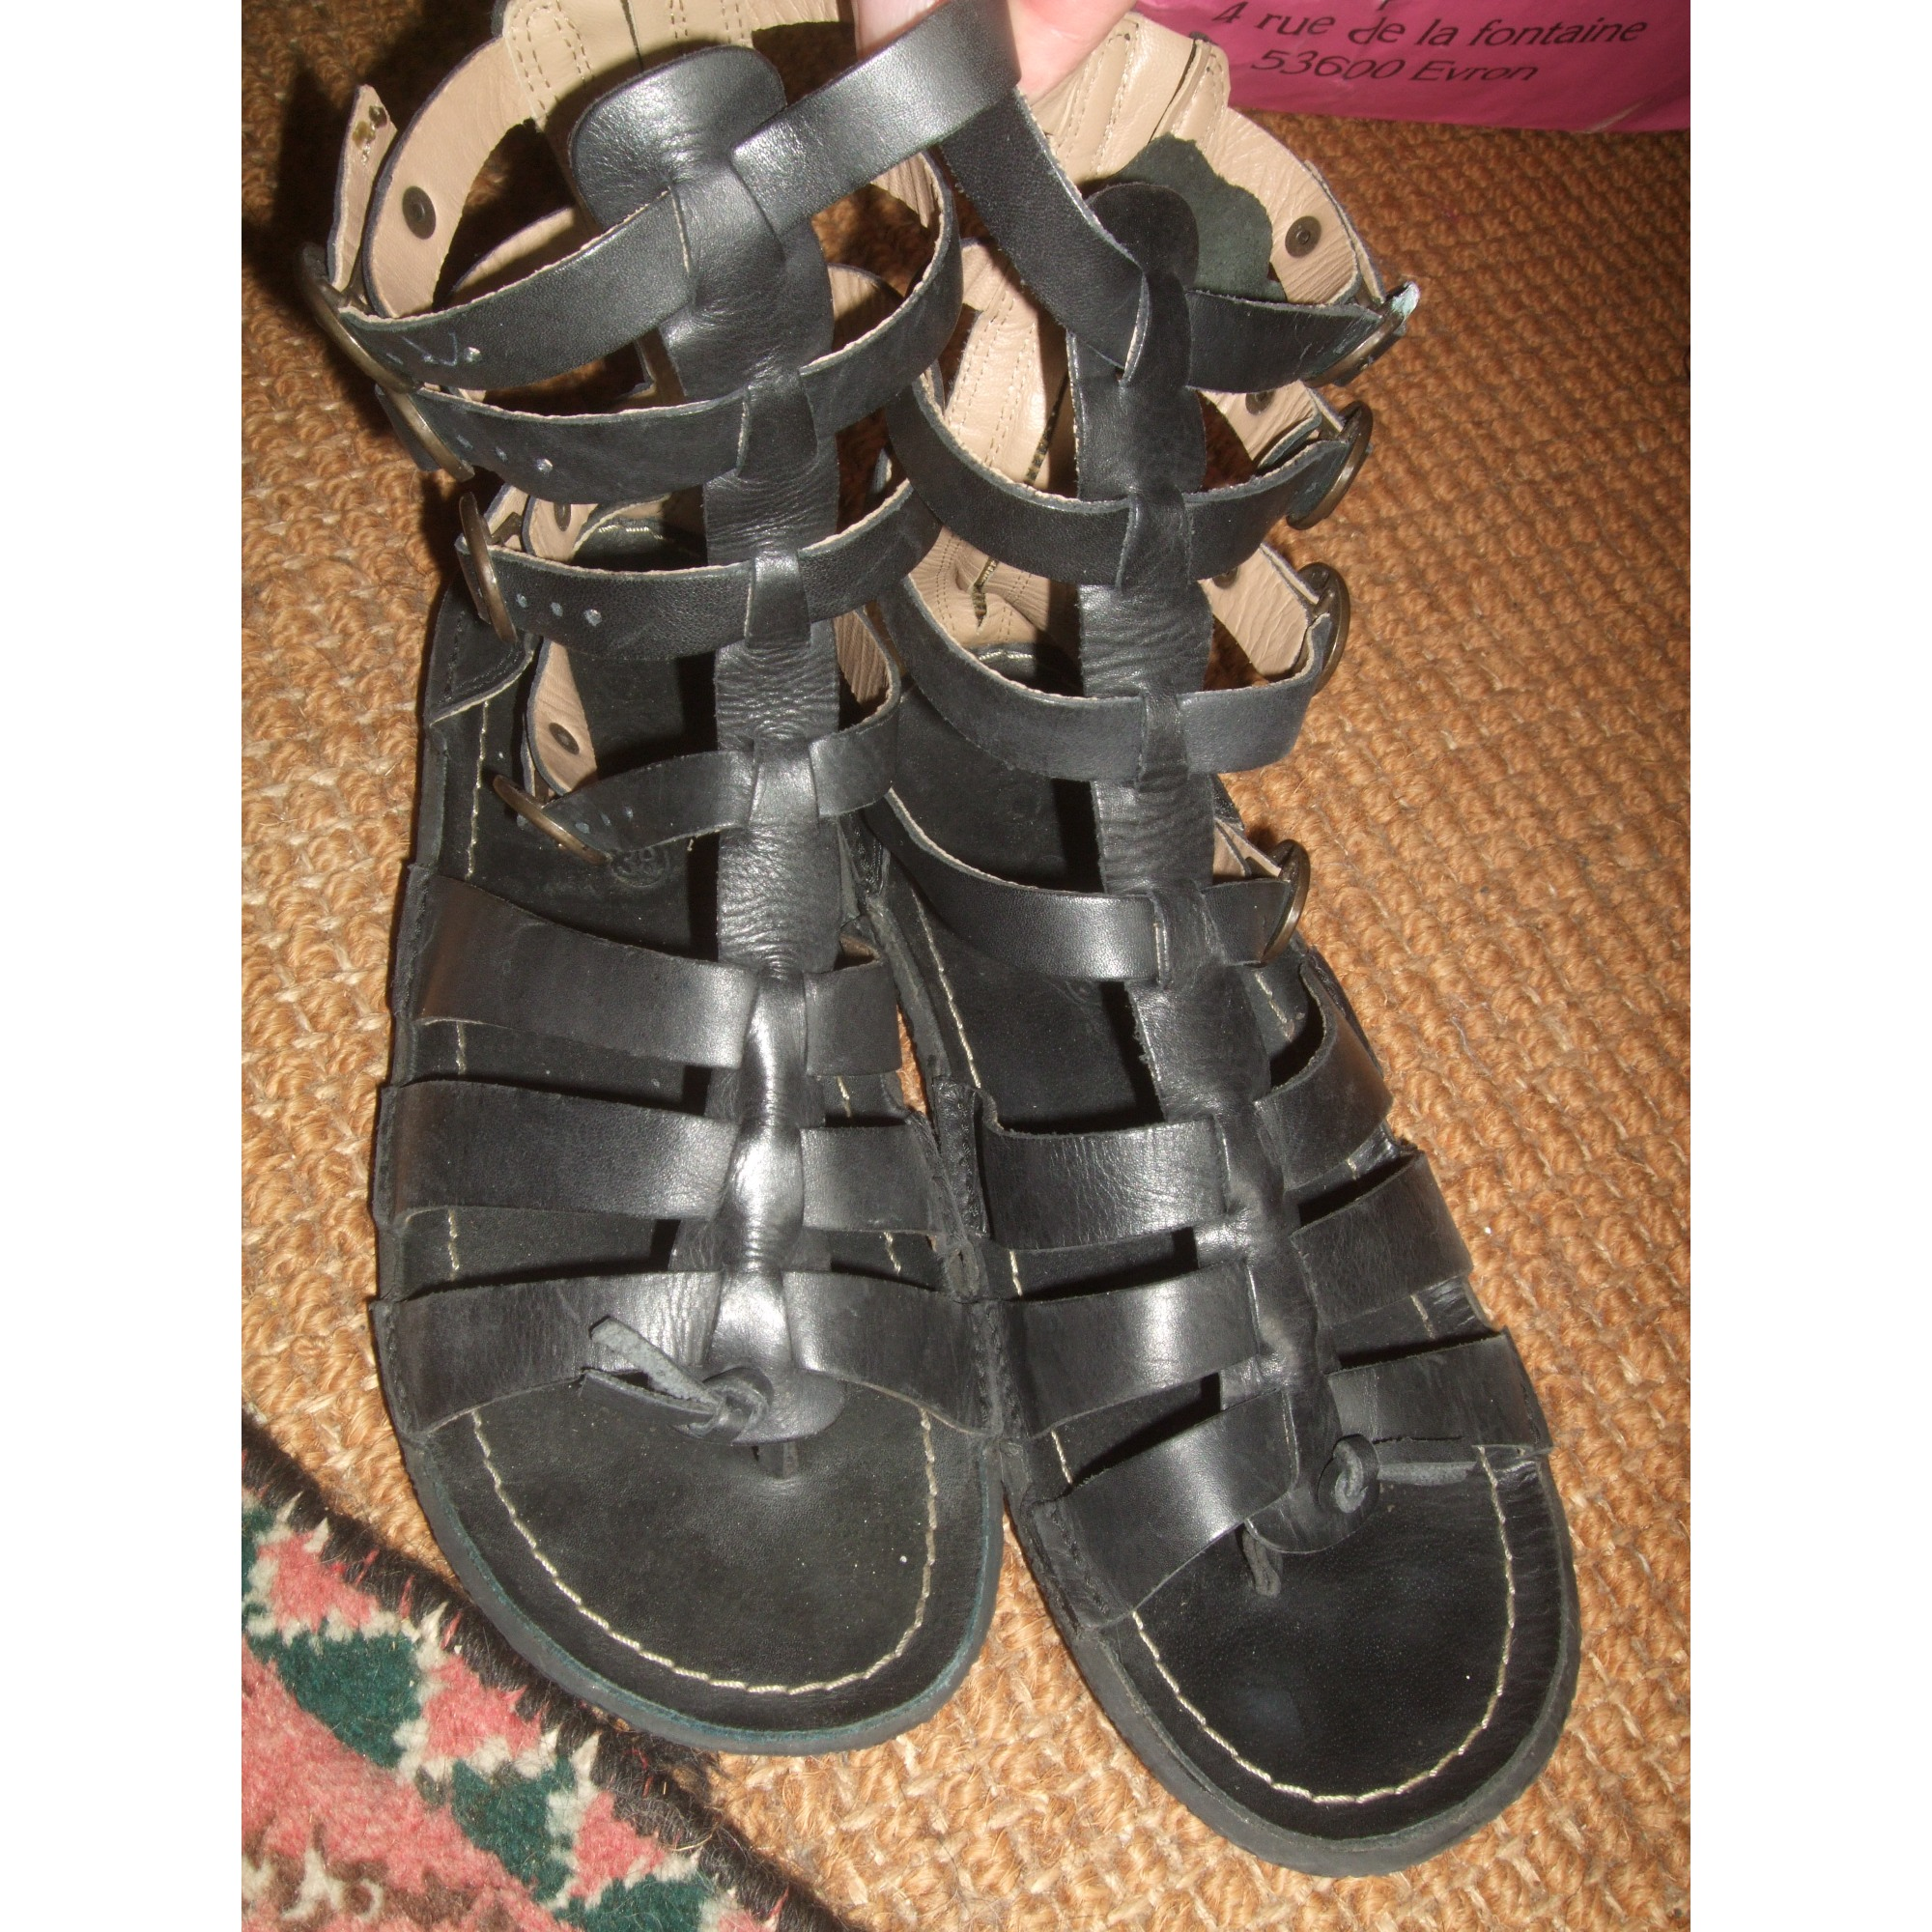 58489a9d931 Gladiators KICKERS 38 black vendu par Gladys 2108960 - 6624860